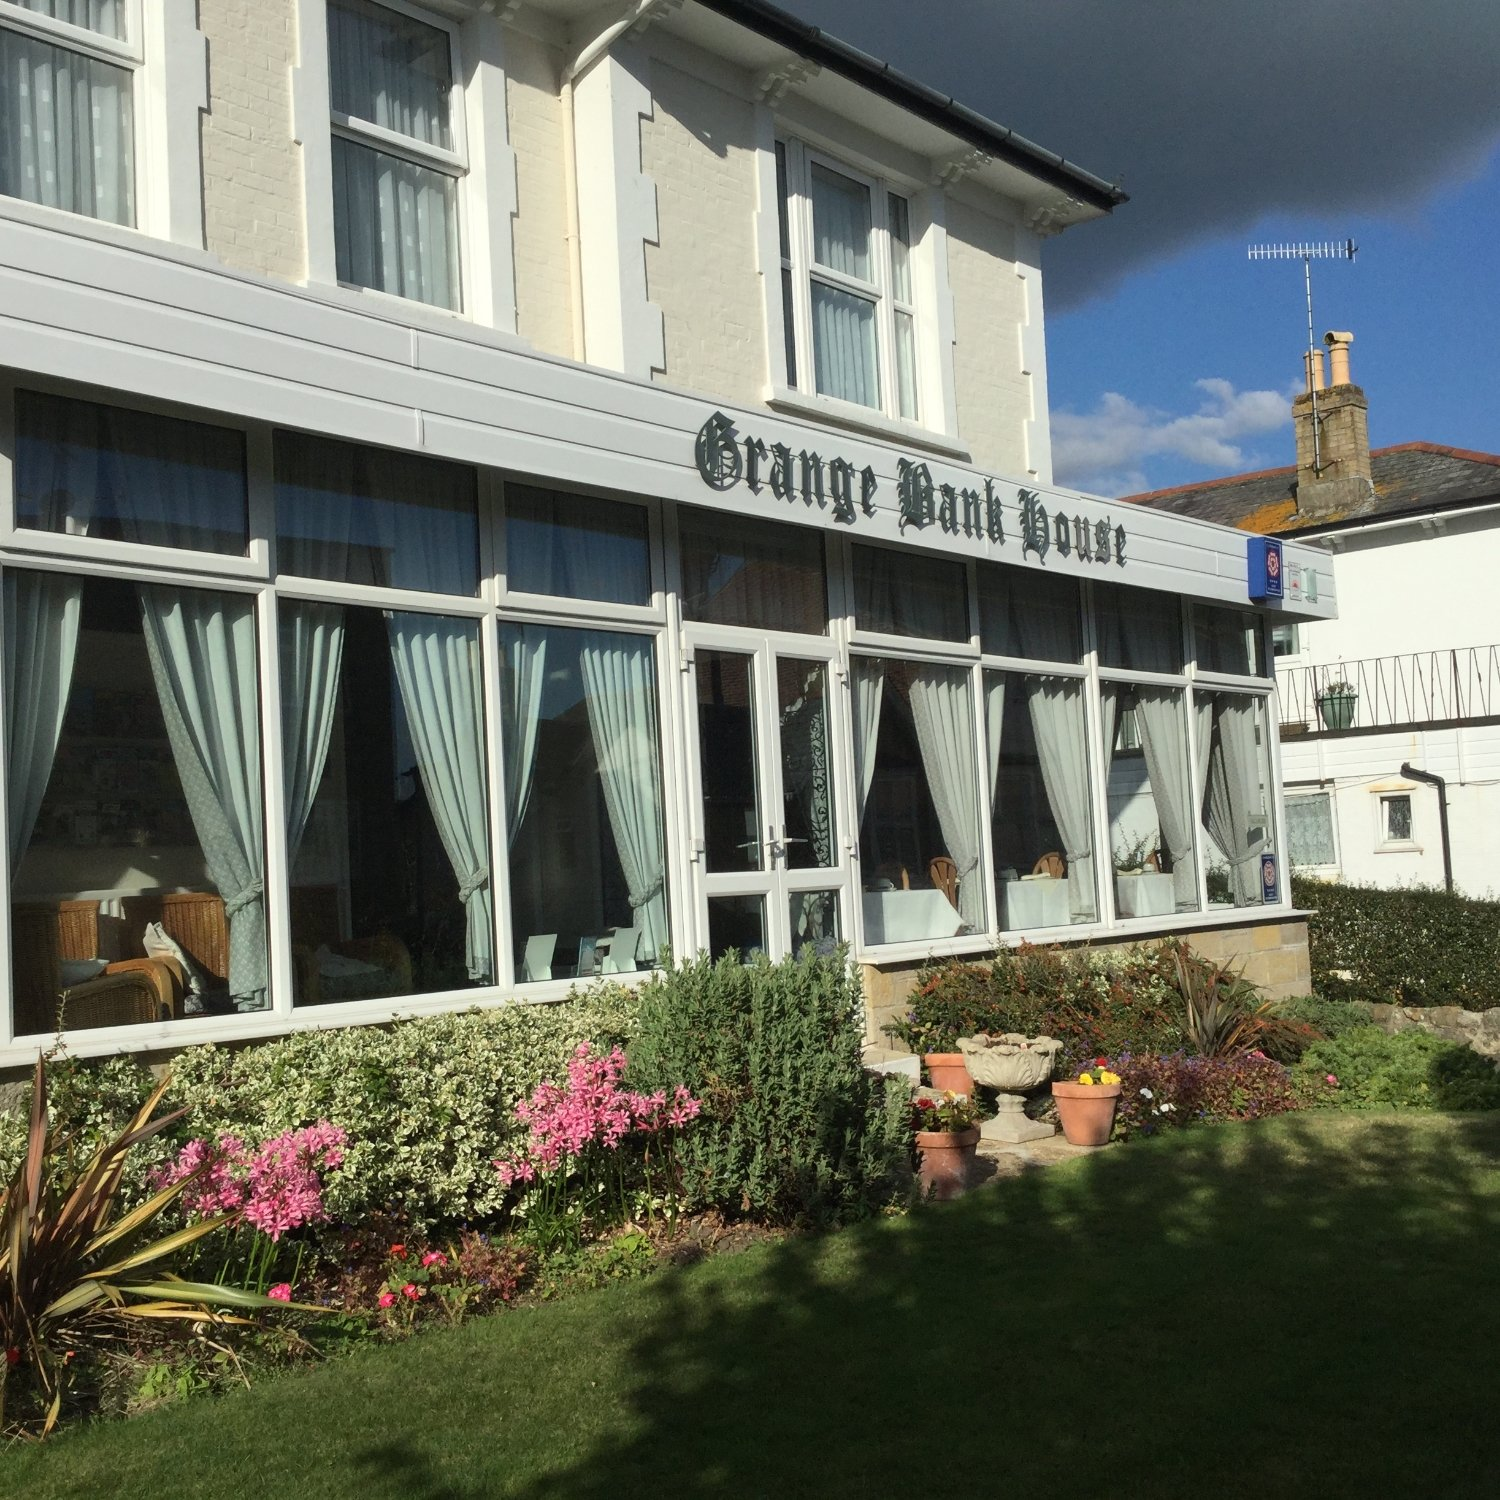 Grange Bank House - UPDATED 2017 B&B Reviews & Price ...